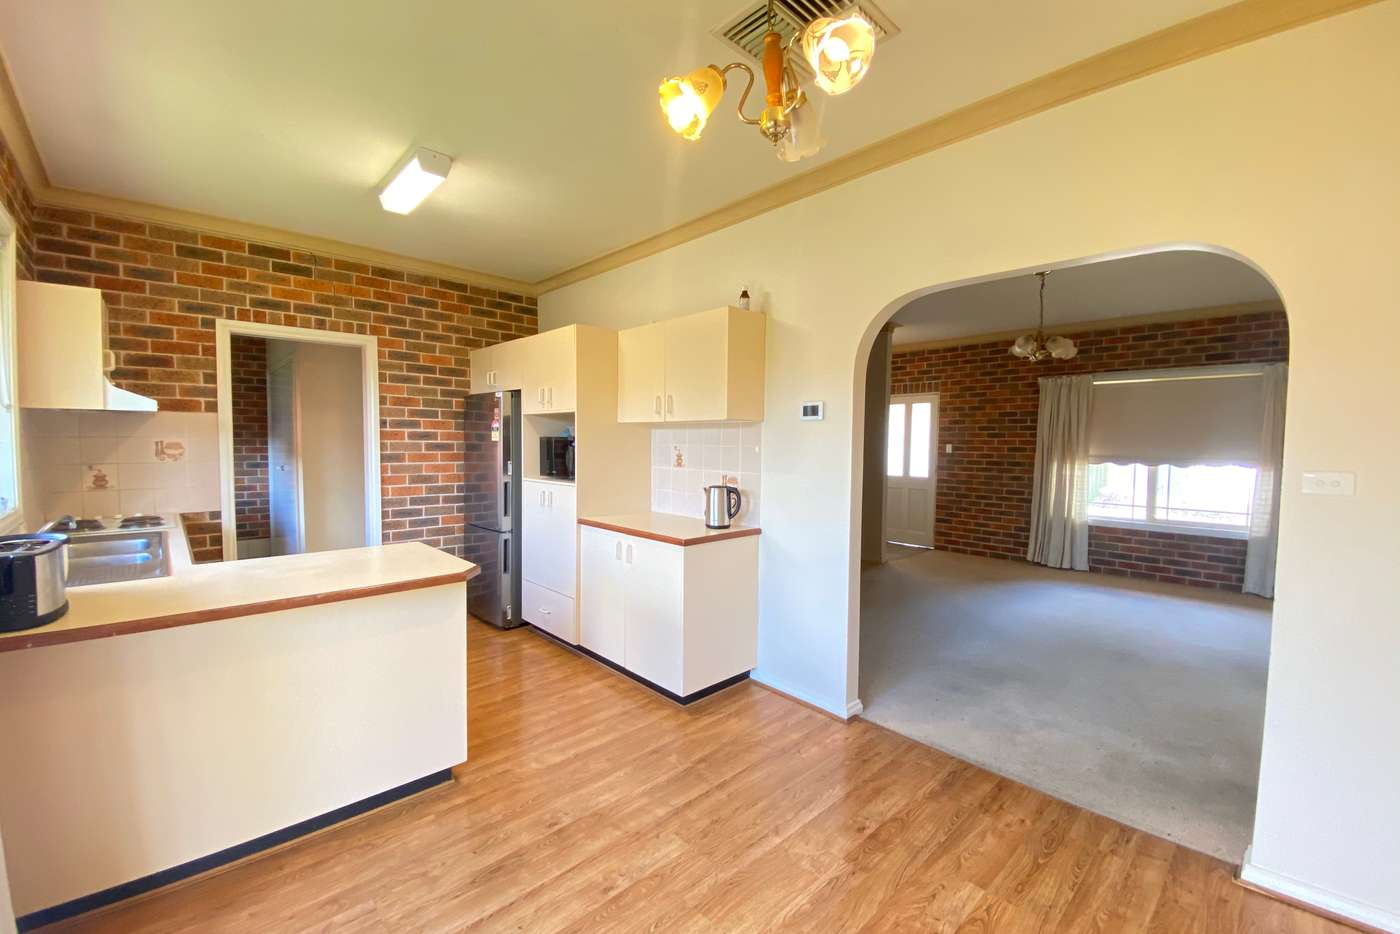 Sixth view of Homely unit listing, 2/76 Brookong Avenue, Wagga Wagga NSW 2650